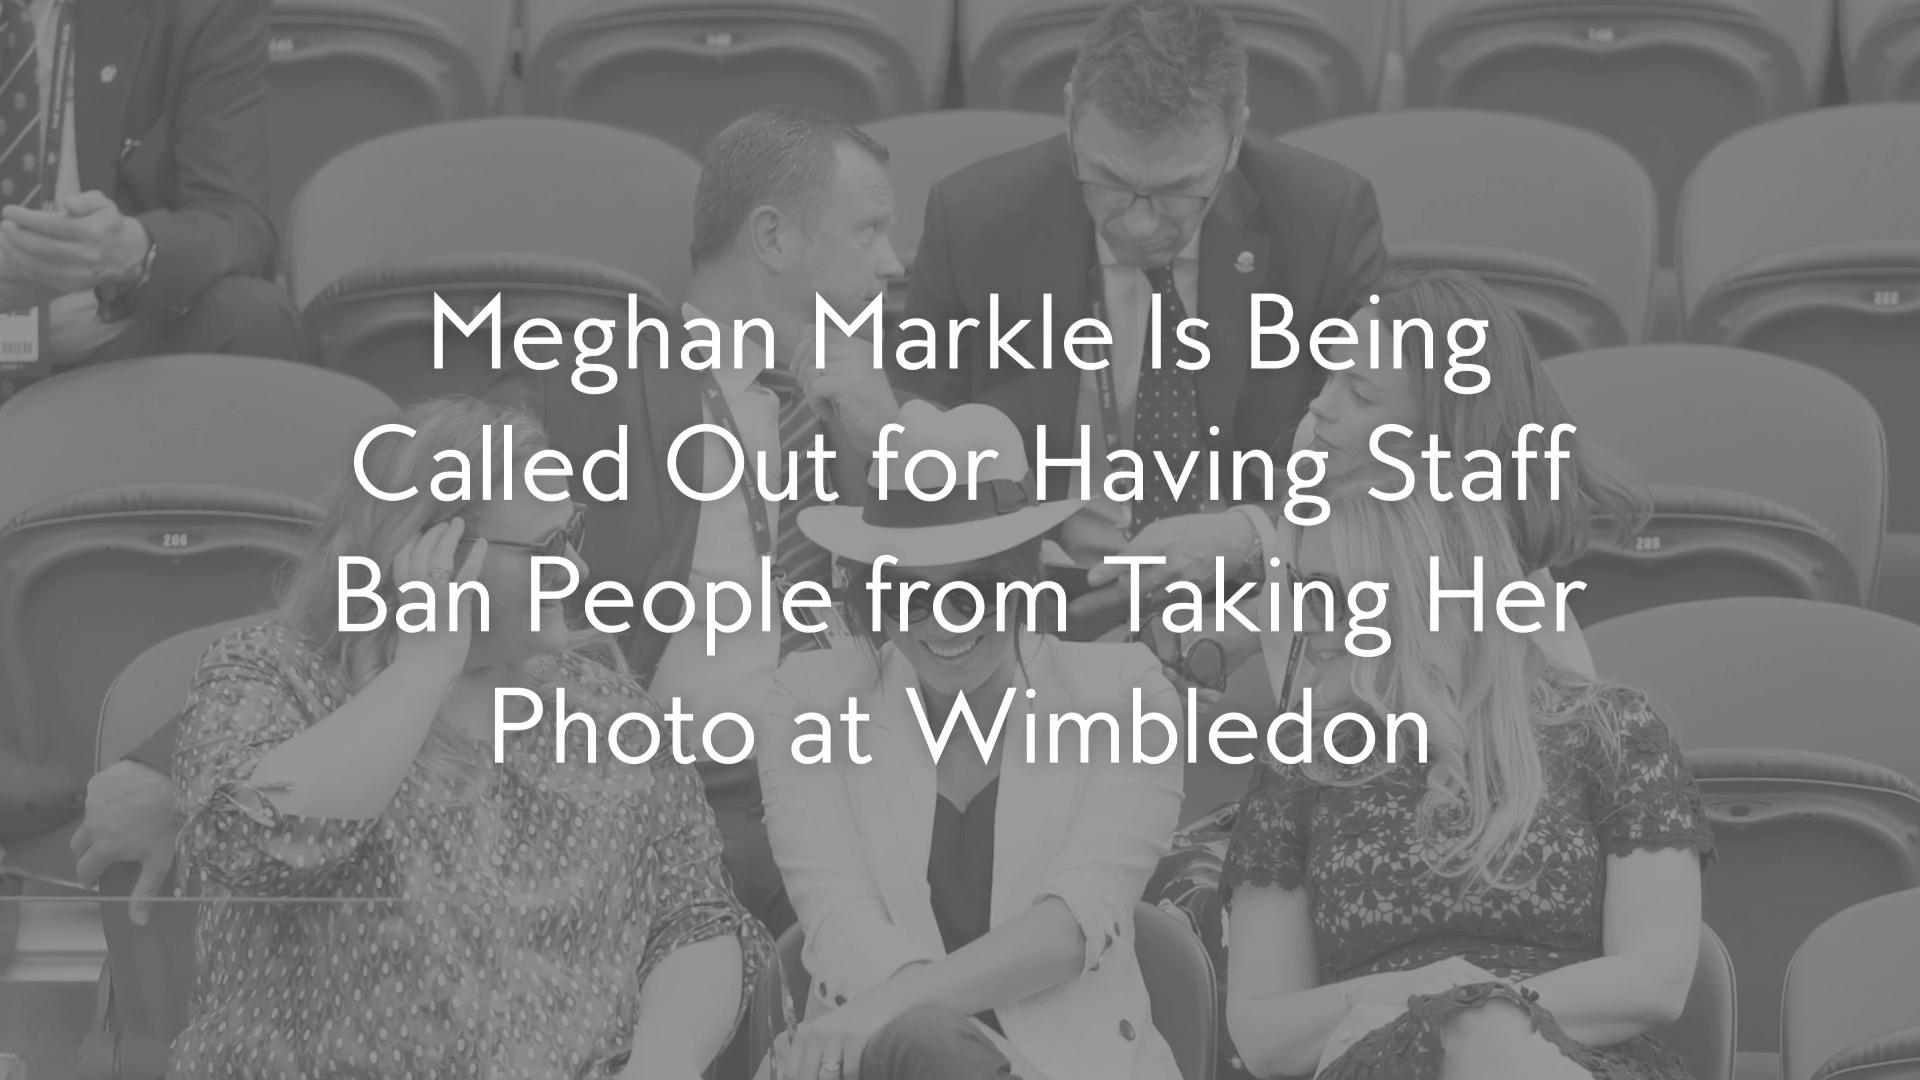 People Are Calling Meghan Markle A 'Diva' For Wanting Privacy At Wimbledon